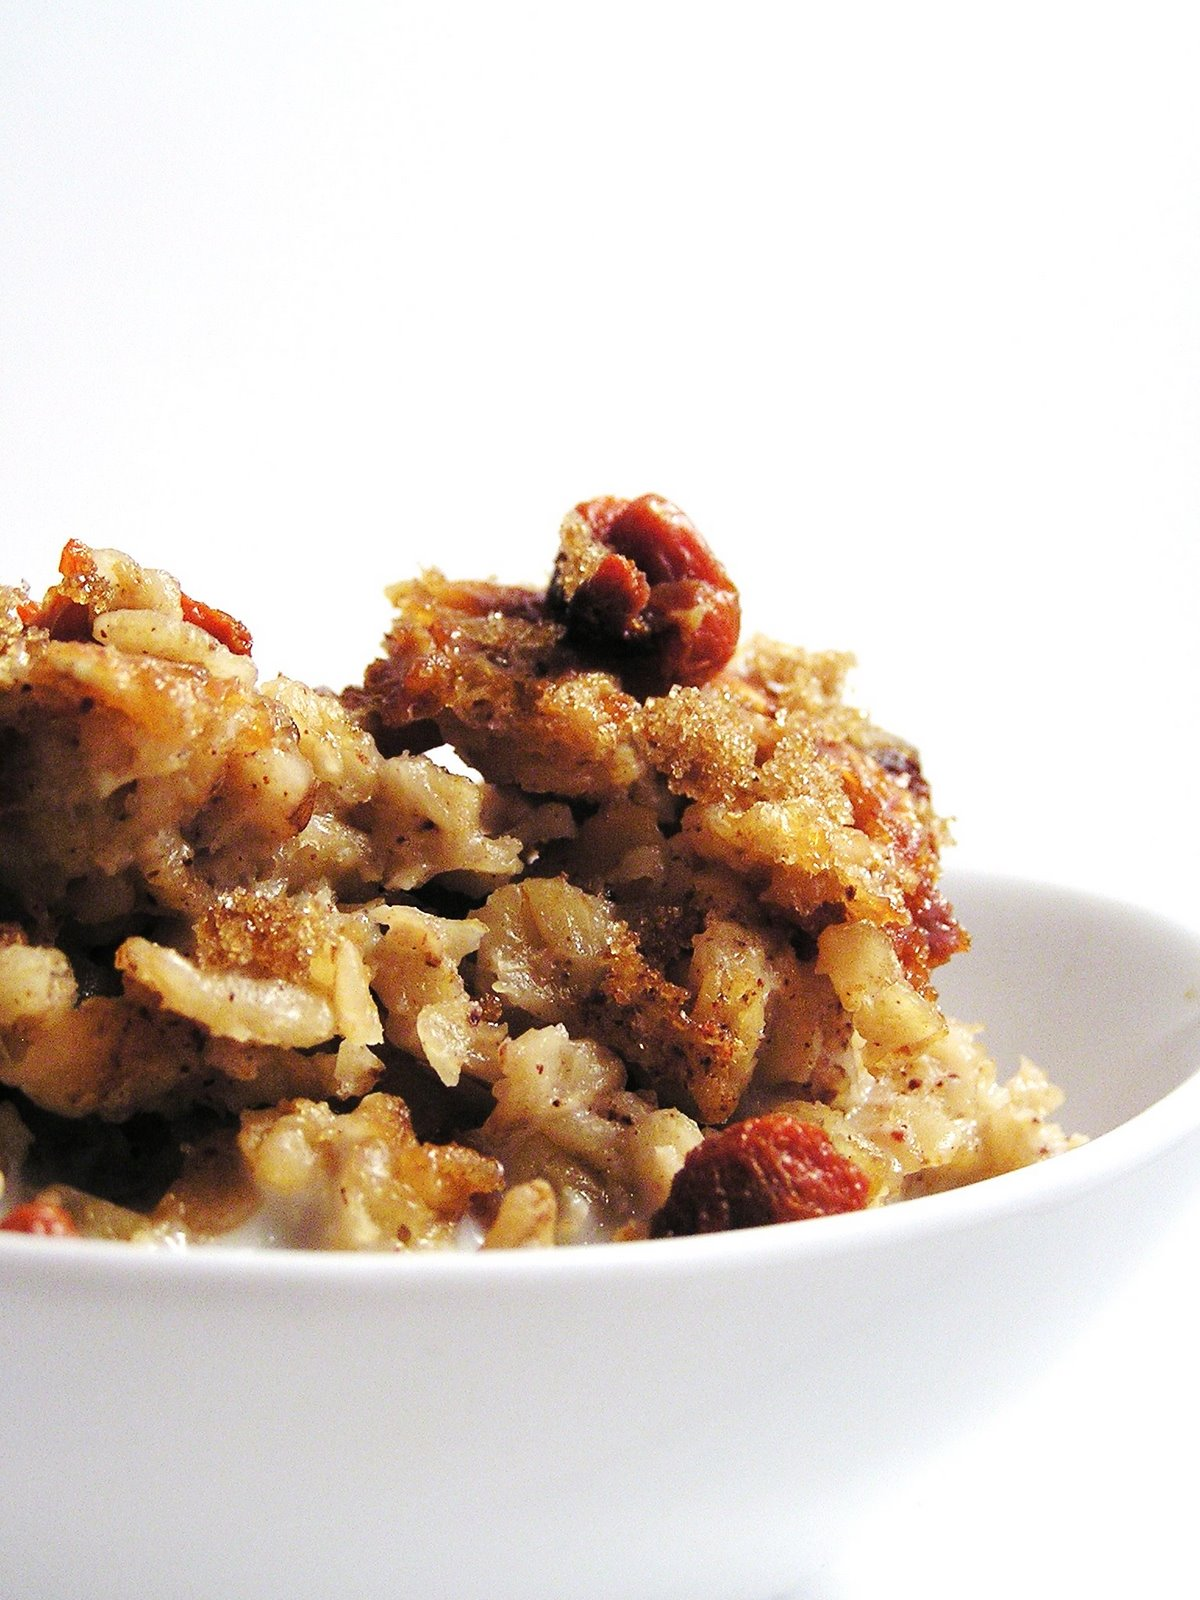 Cast Sugar: Baked Oatmeal